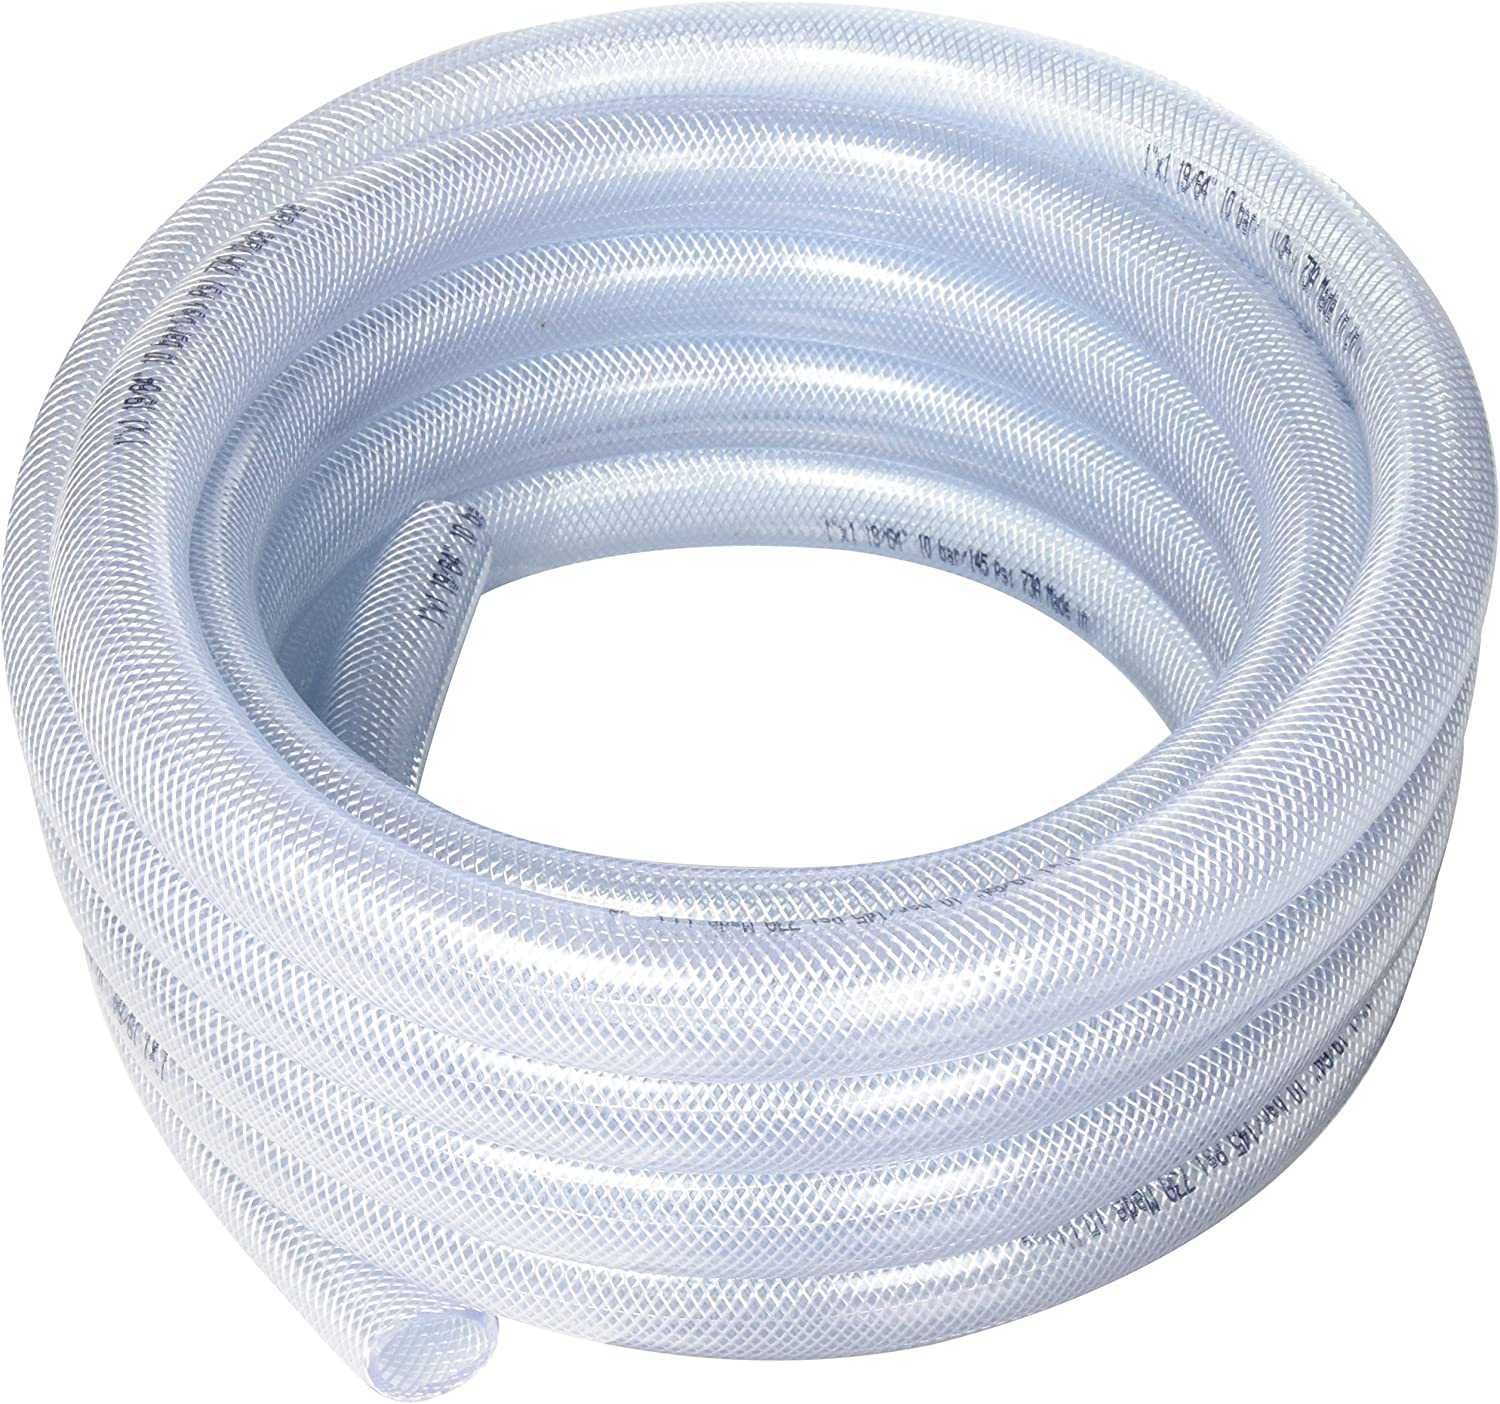 "Duda Energy HPpvc100-025ft 25' x 1"" ID High Pressure Braided Clear Flexible PVC Tubing Heavy Duty UV Chemical Resistant Vinyl Hose Water Oil"